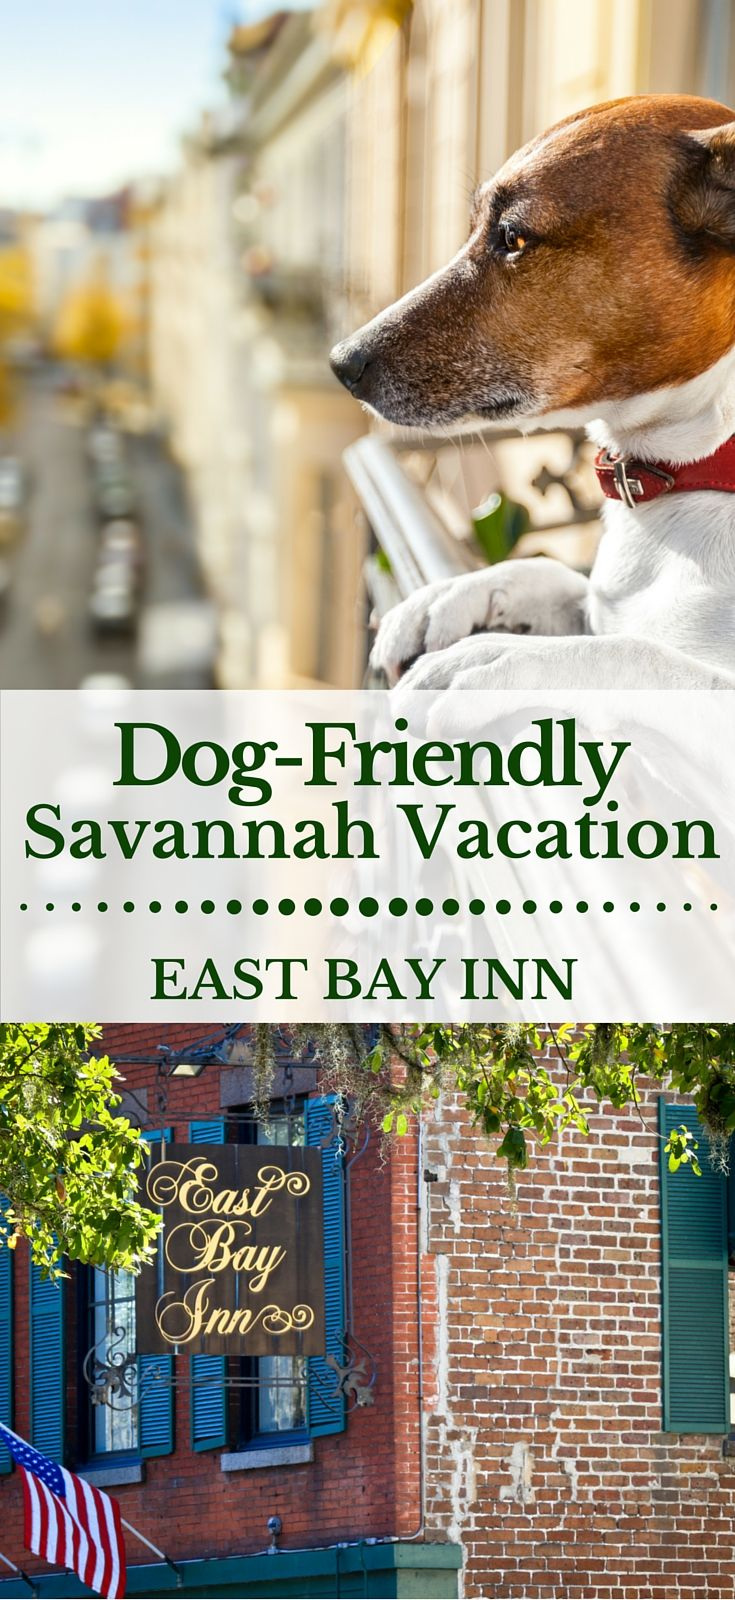 Pet Friendly Hotels In Downtown Savannah You Might Not Expect A